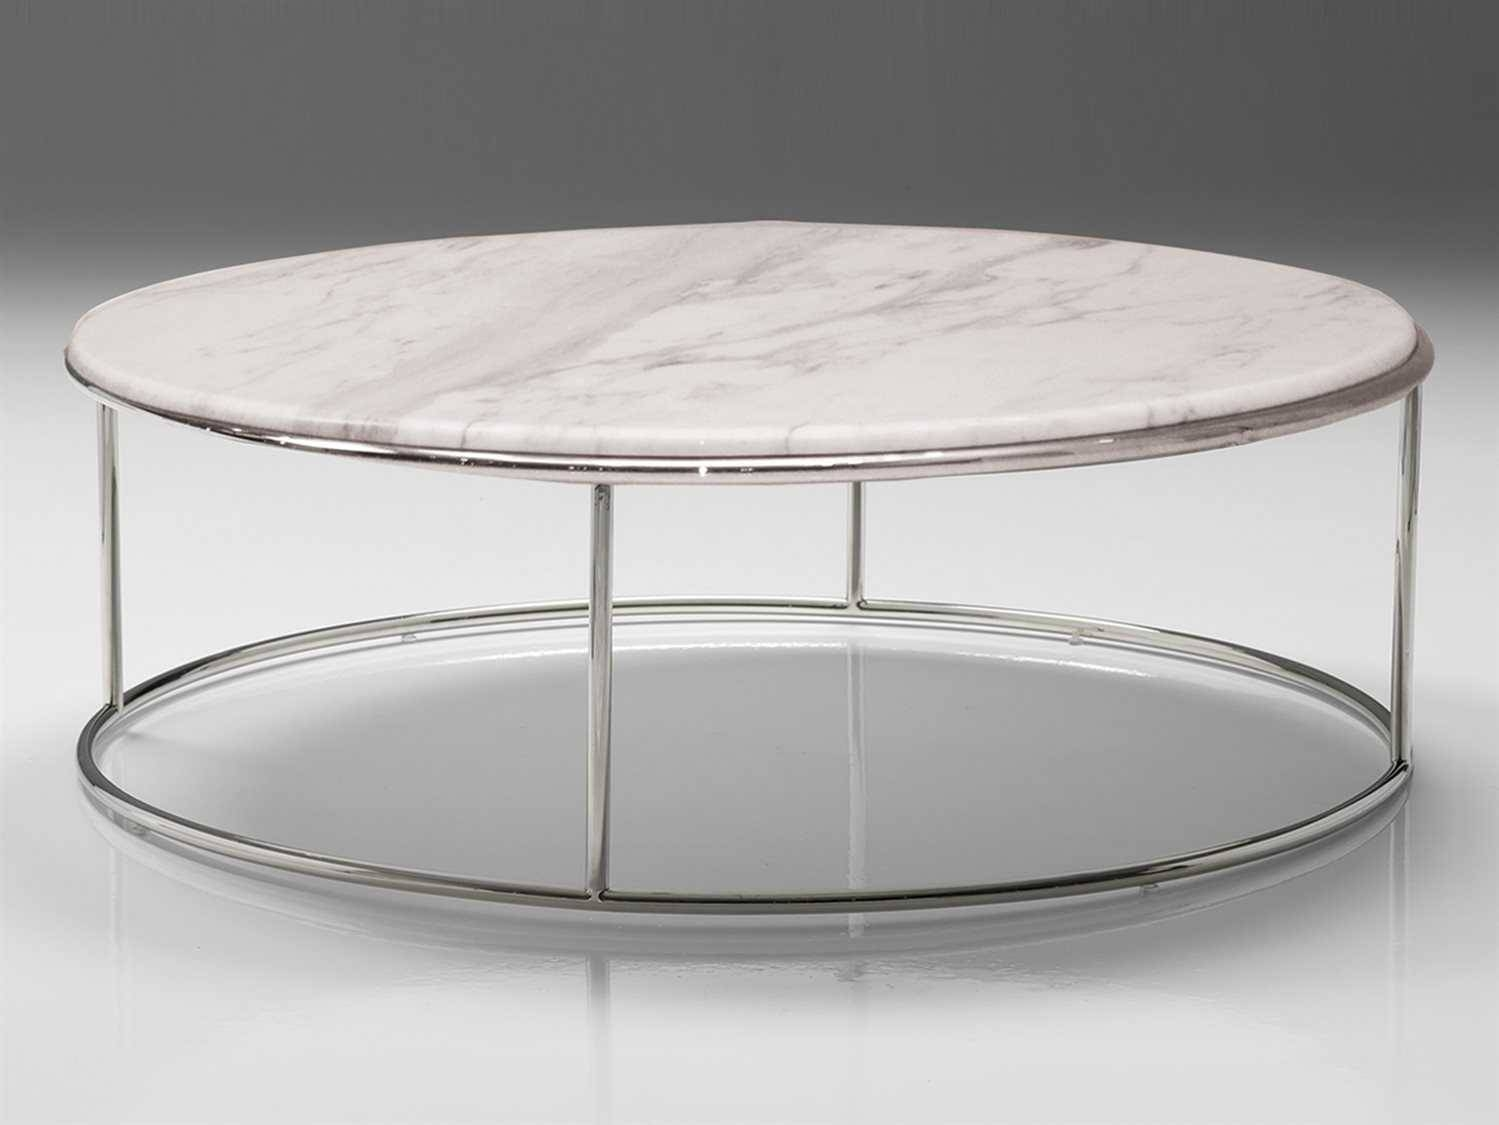 Mobital Elysee 39 Round Marble Coffee Table | Mbwcoelysmarb with Marble Coffee Tables (Image 26 of 30)